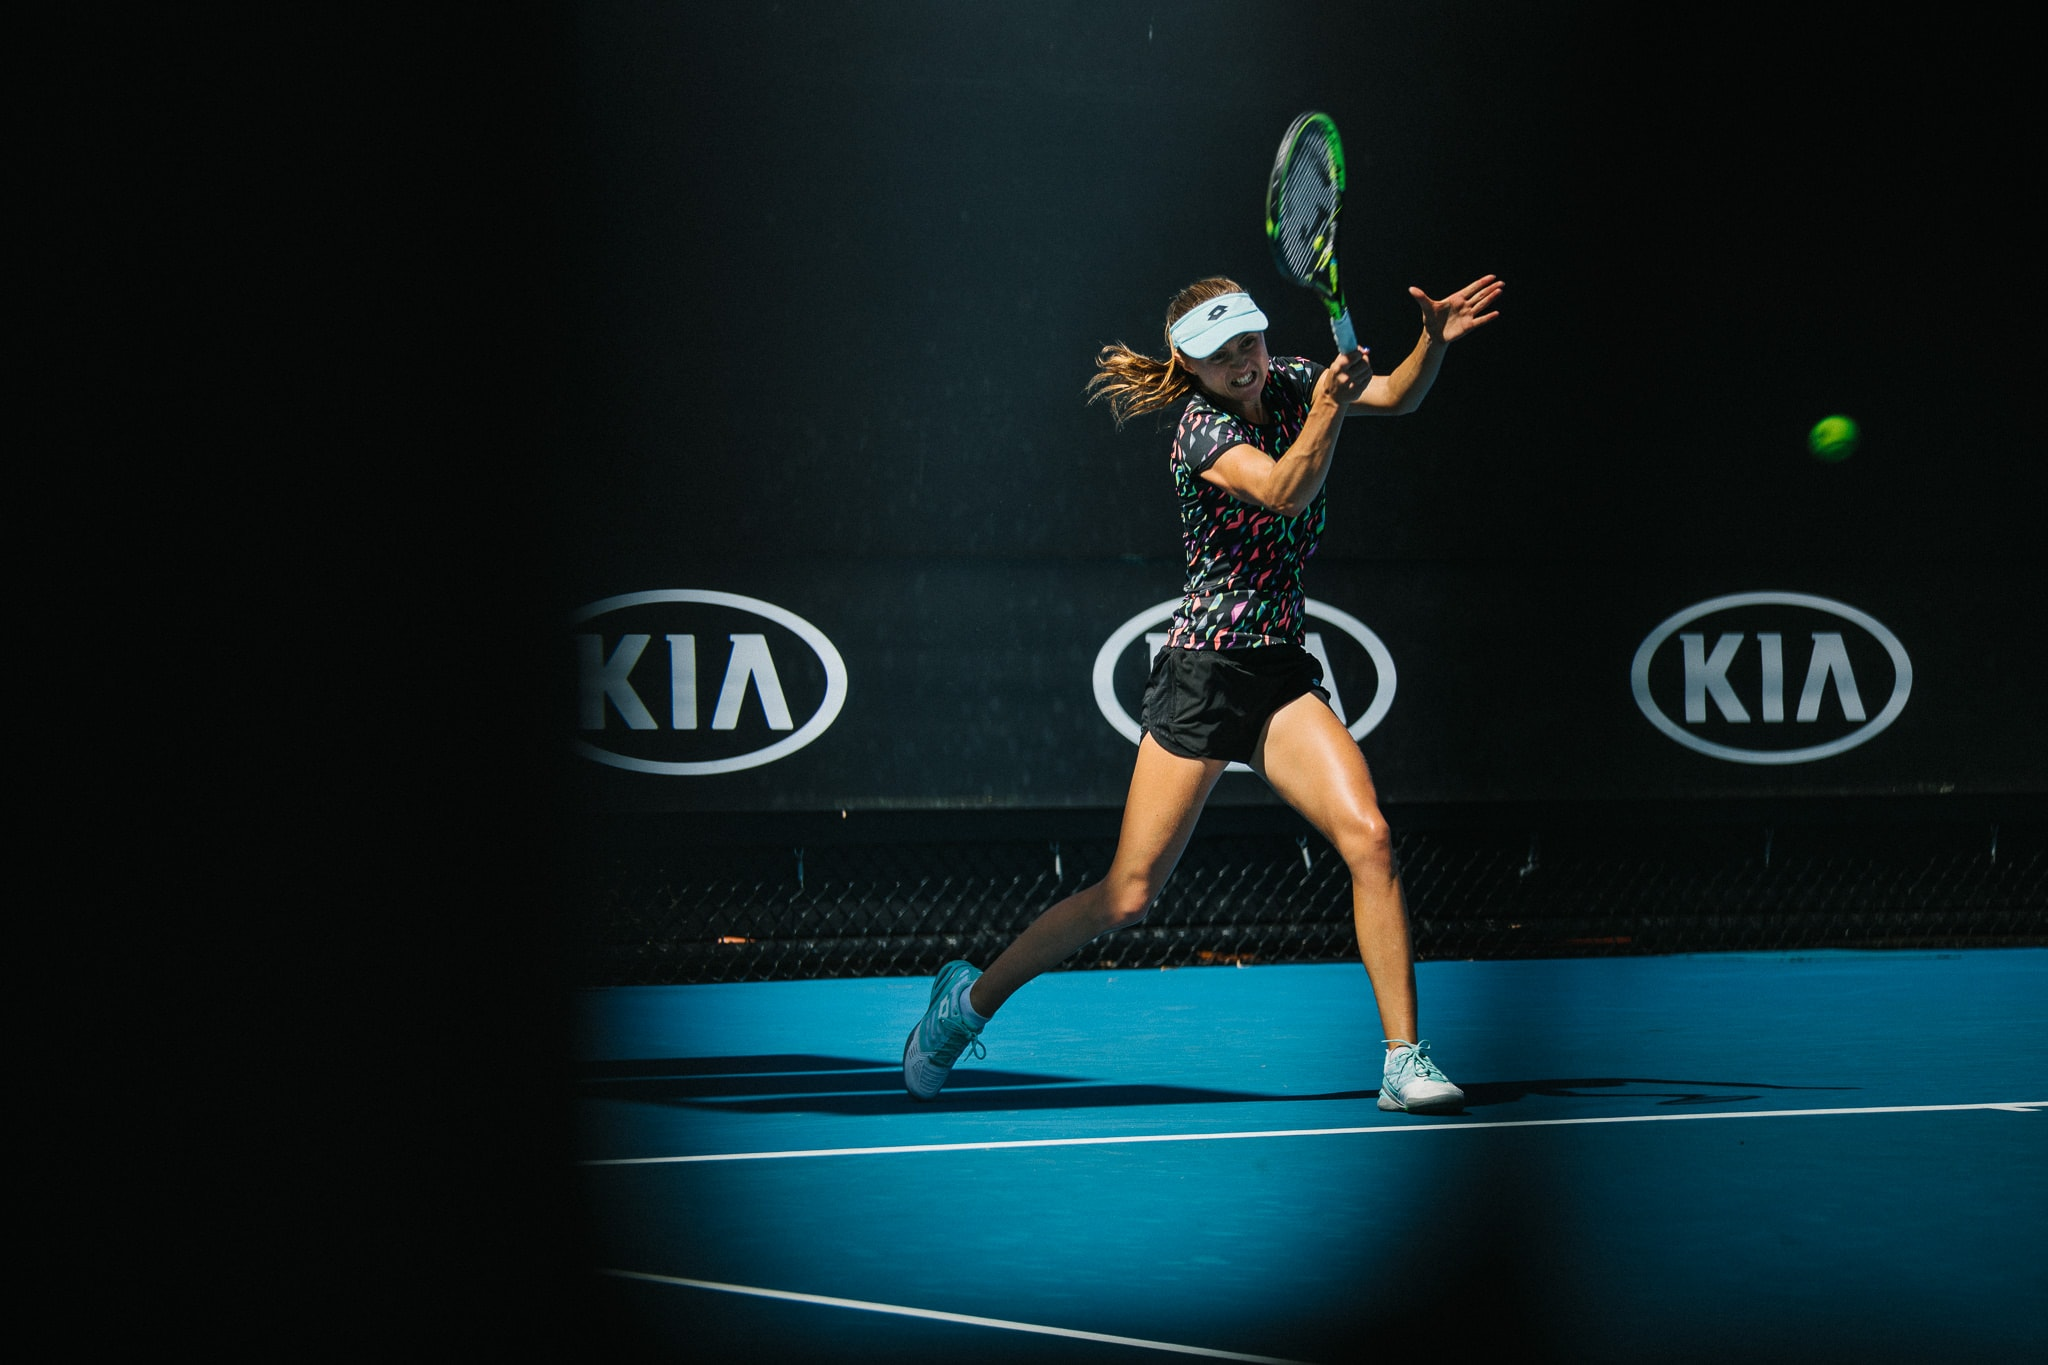 Sports event photographer in Melbourne - creative approach to large scale outdoor events